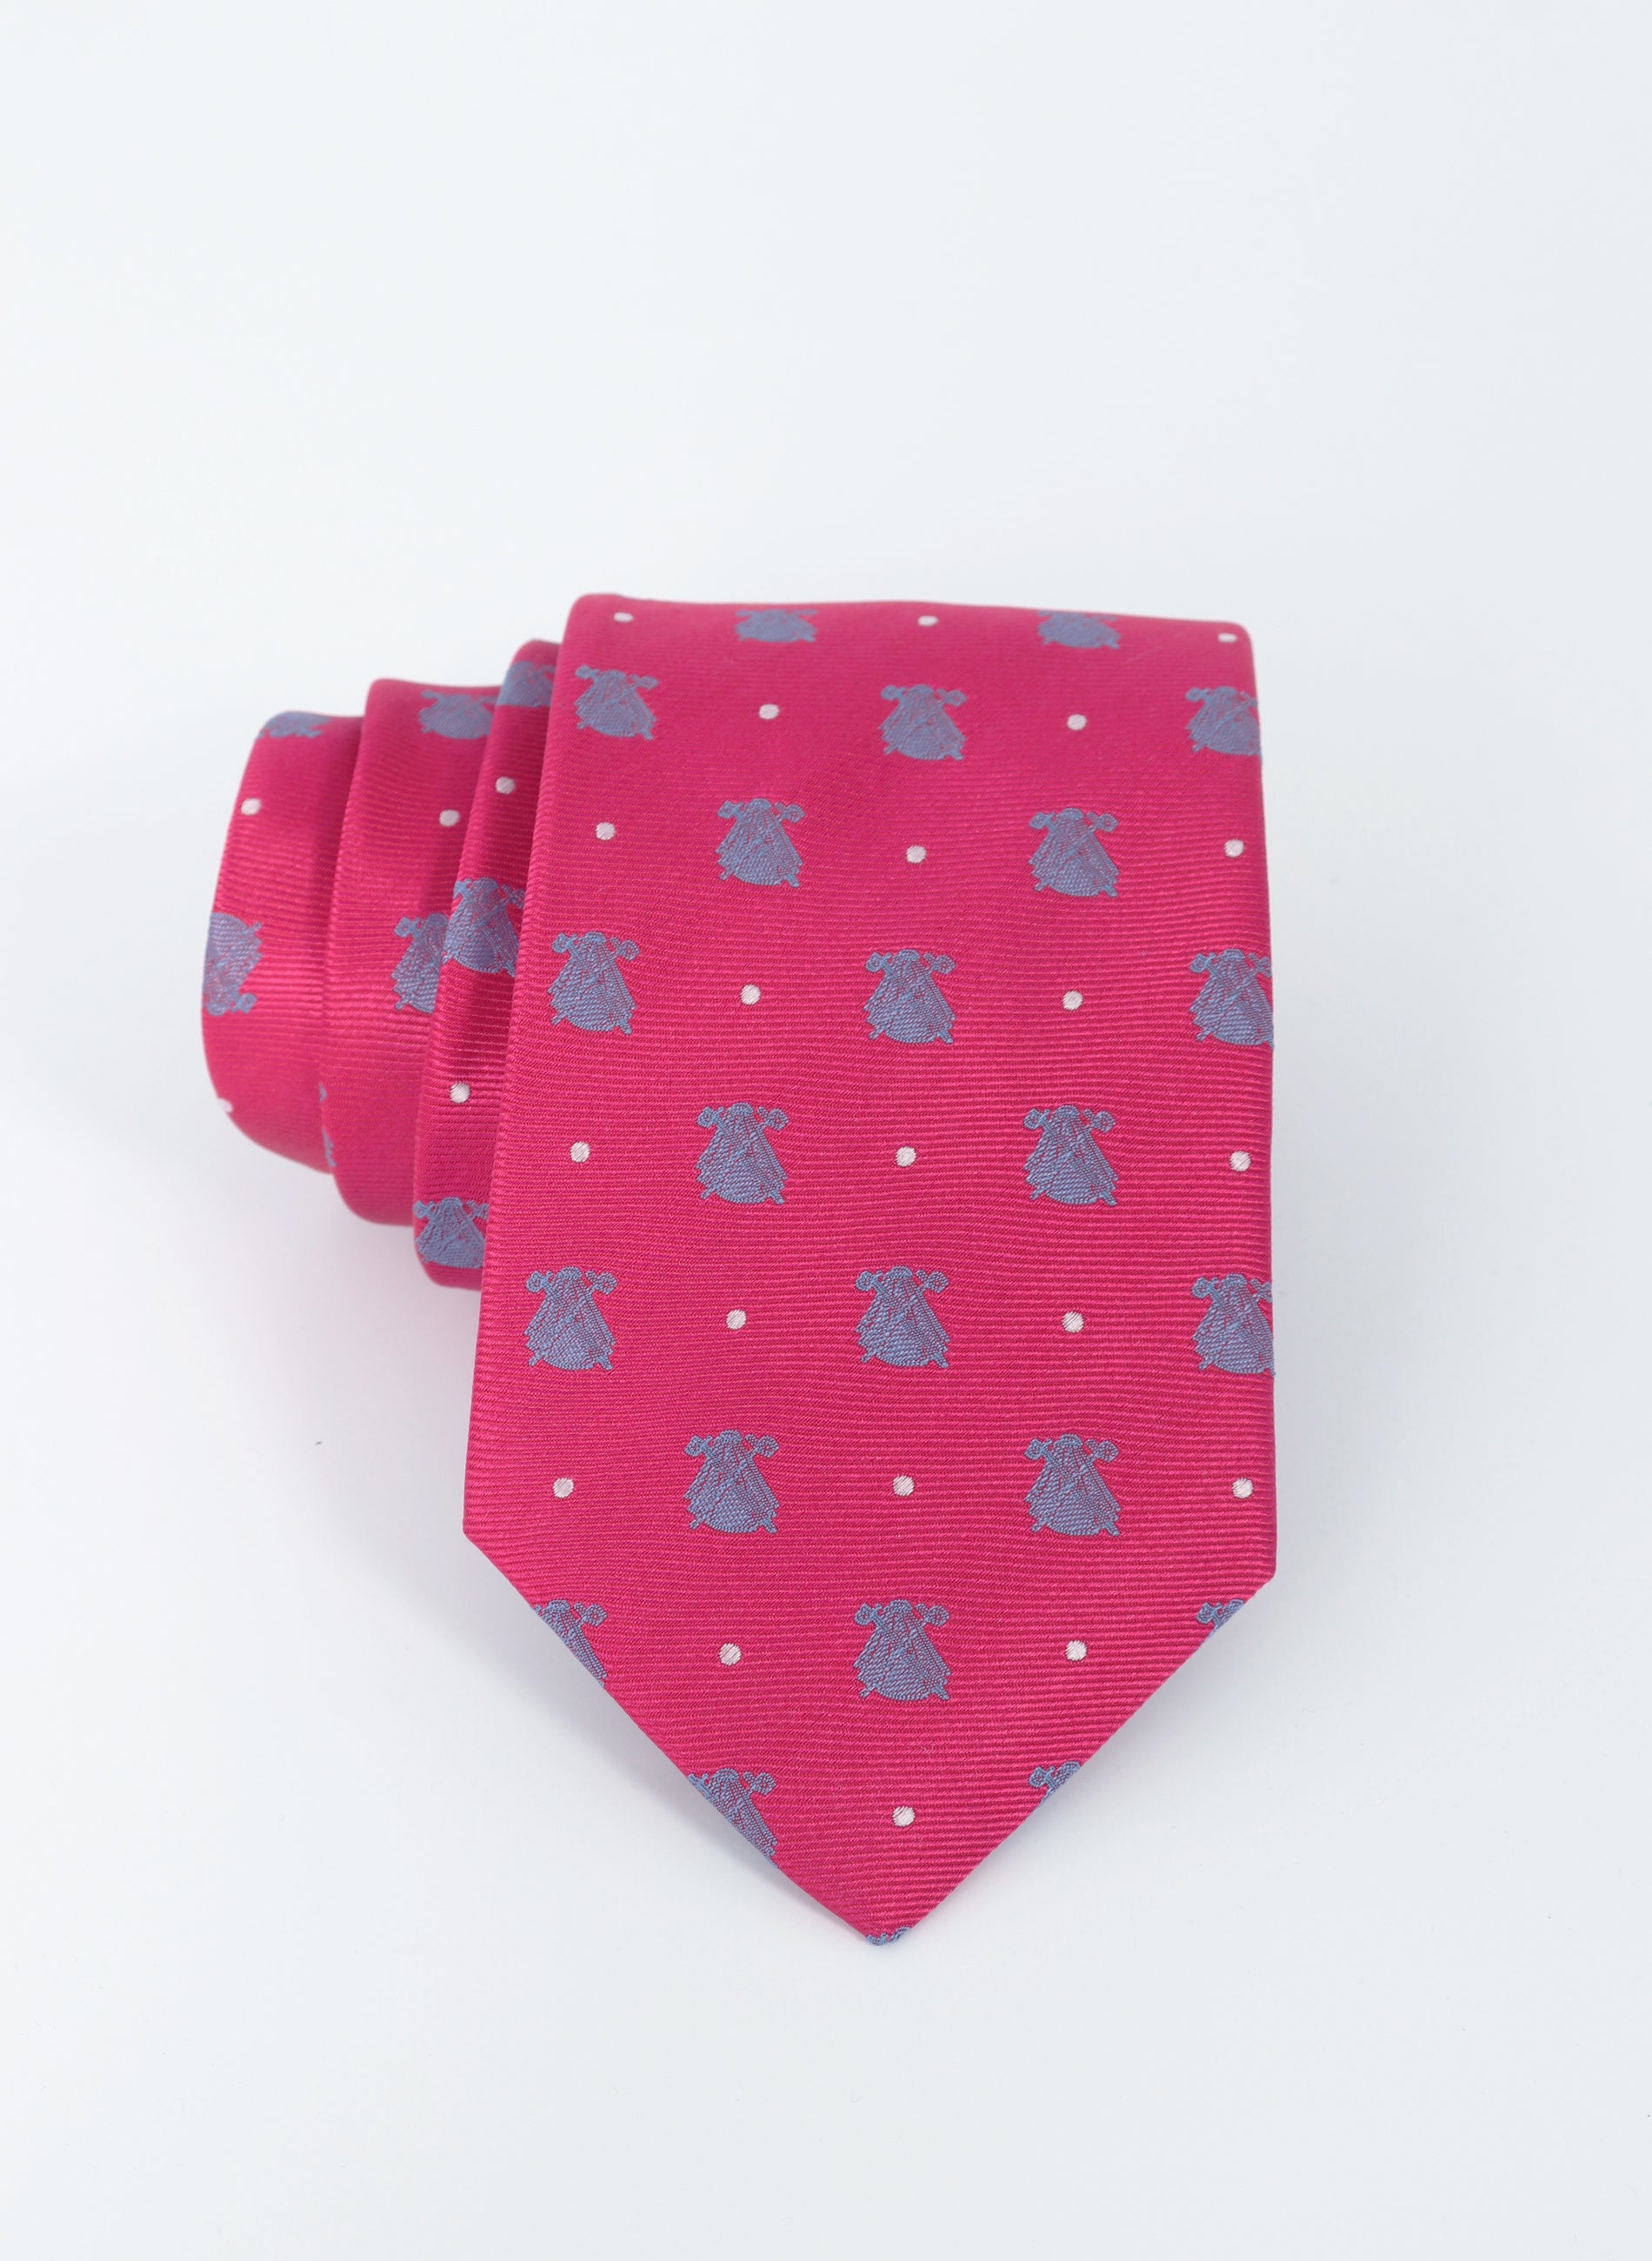 Pink Tie Celestial and White Polka Dots Cloaks